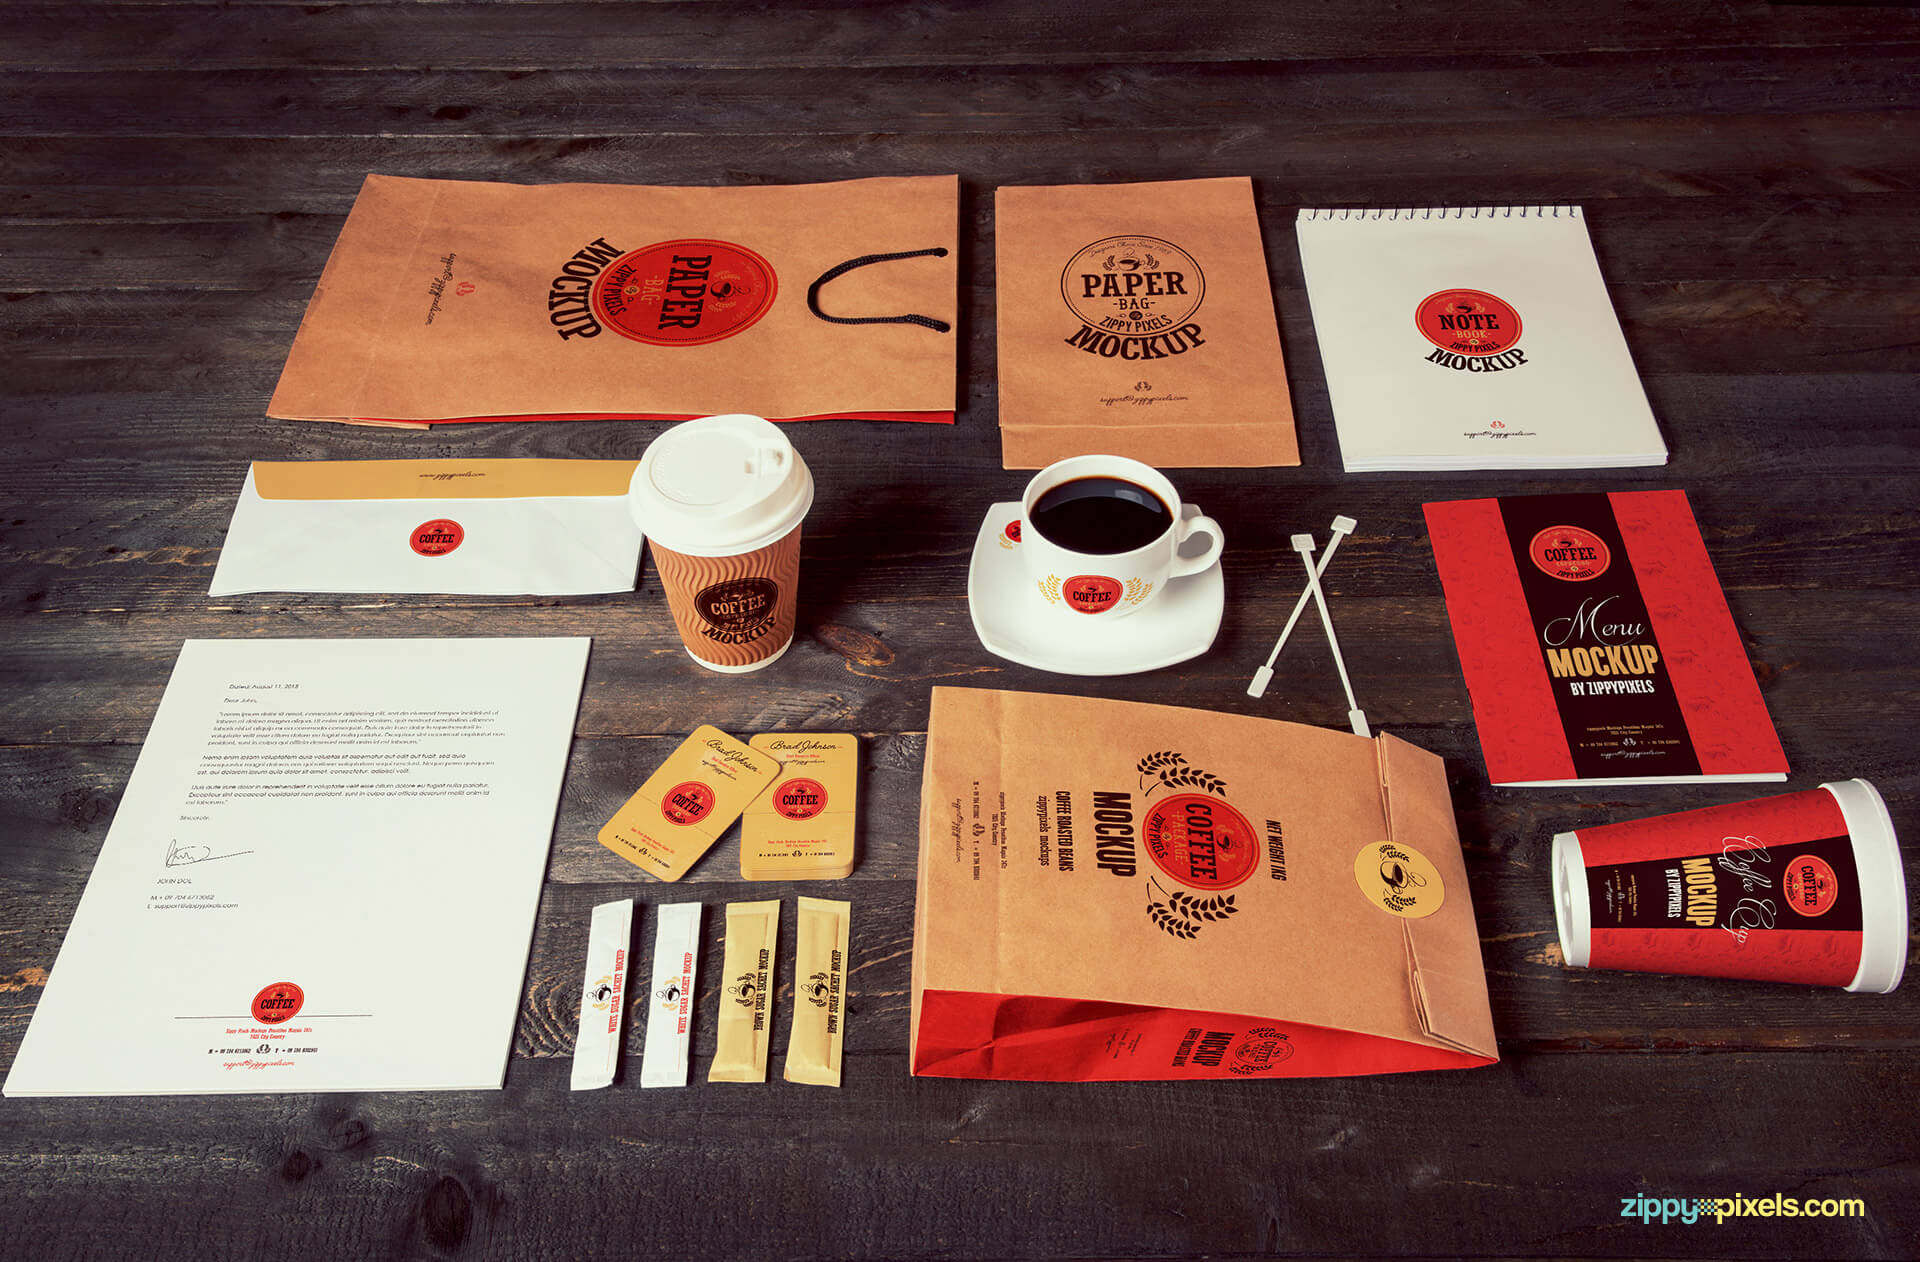 All the coffee branding and packaging mockups you need for a unique presentation